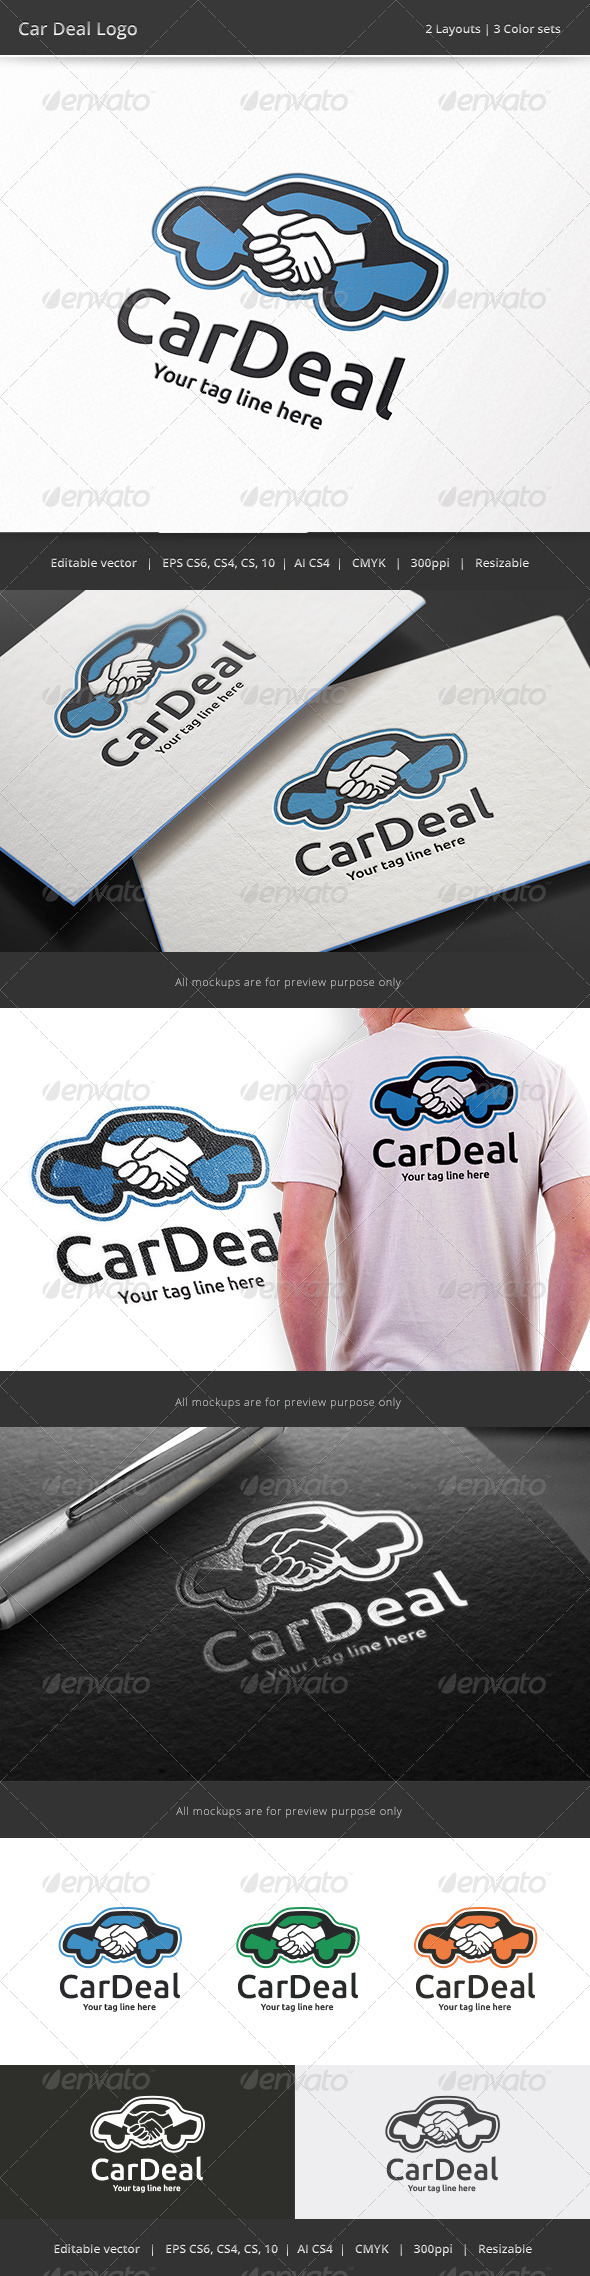 GraphicRiver Car Deal Logo 8158167